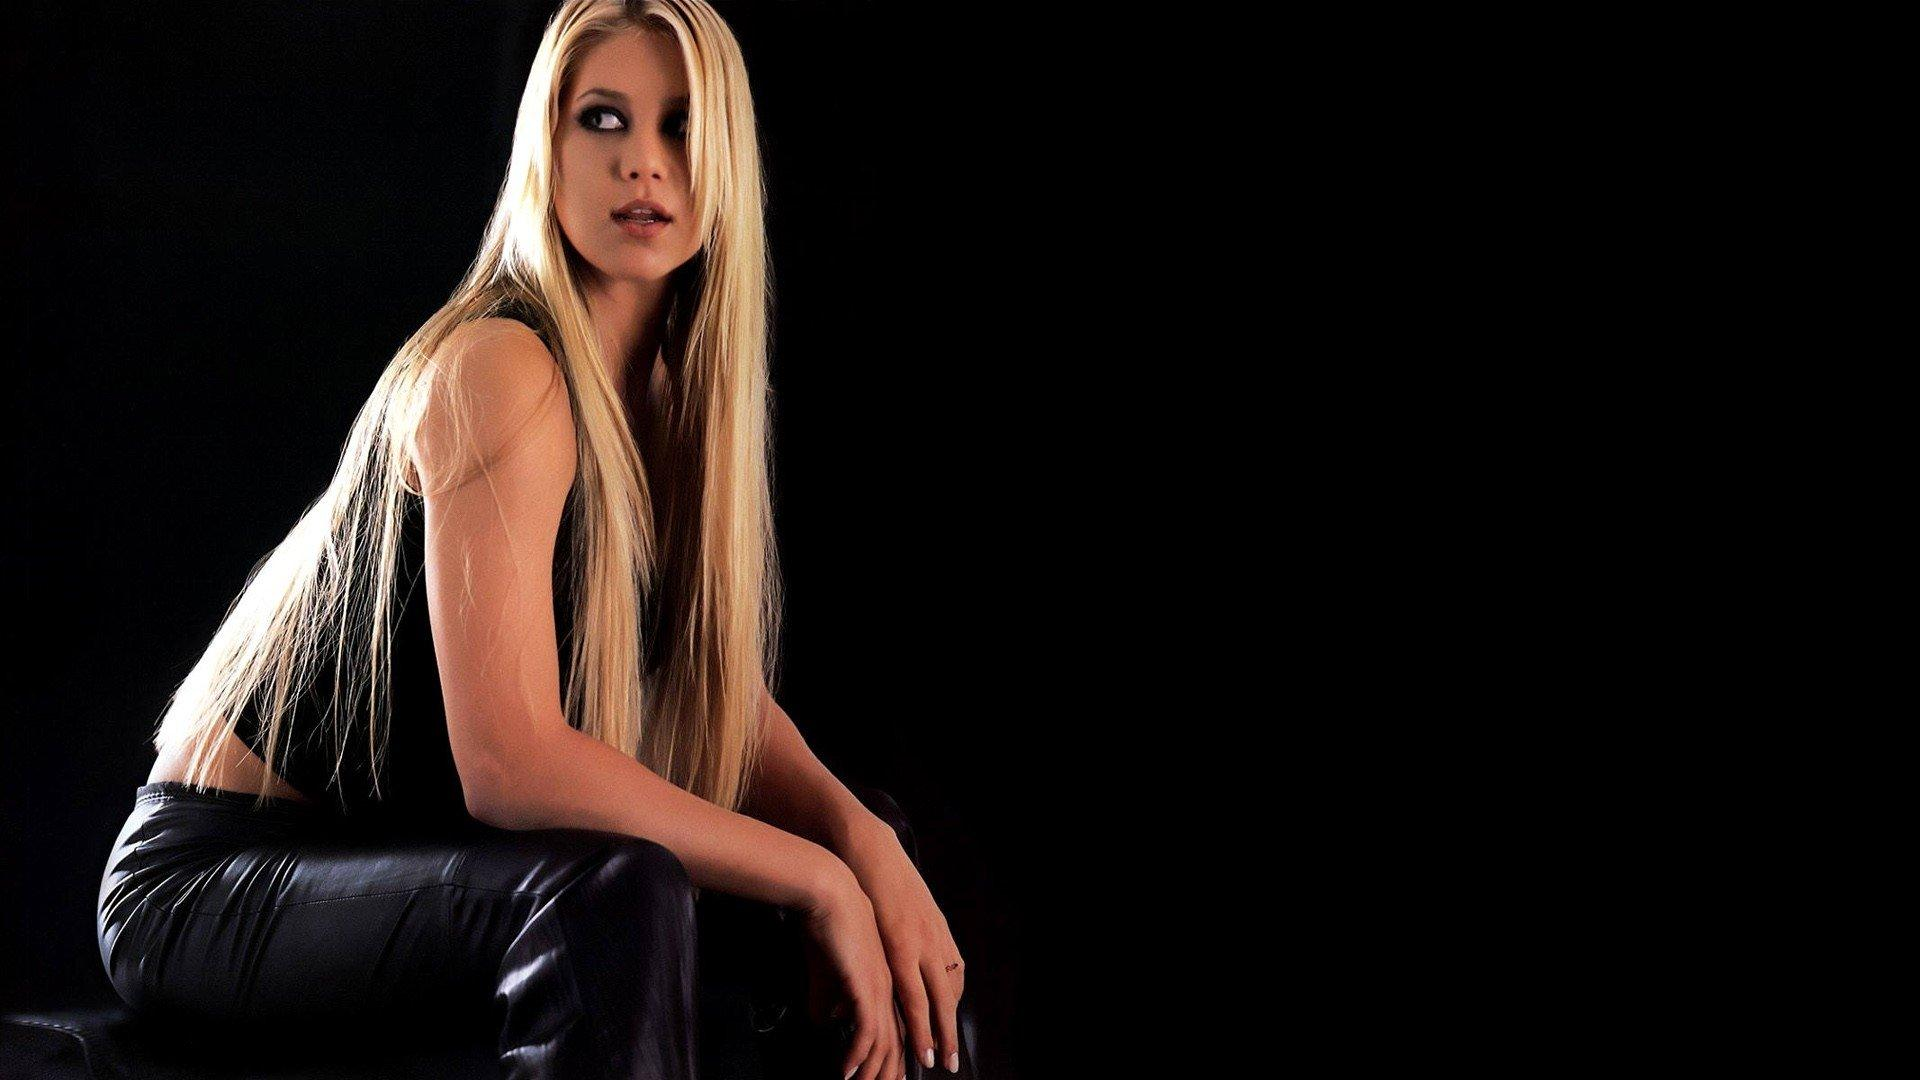 24 Anna Kournikova HD Wallpapers | Background Images - Wallpaper Abyss